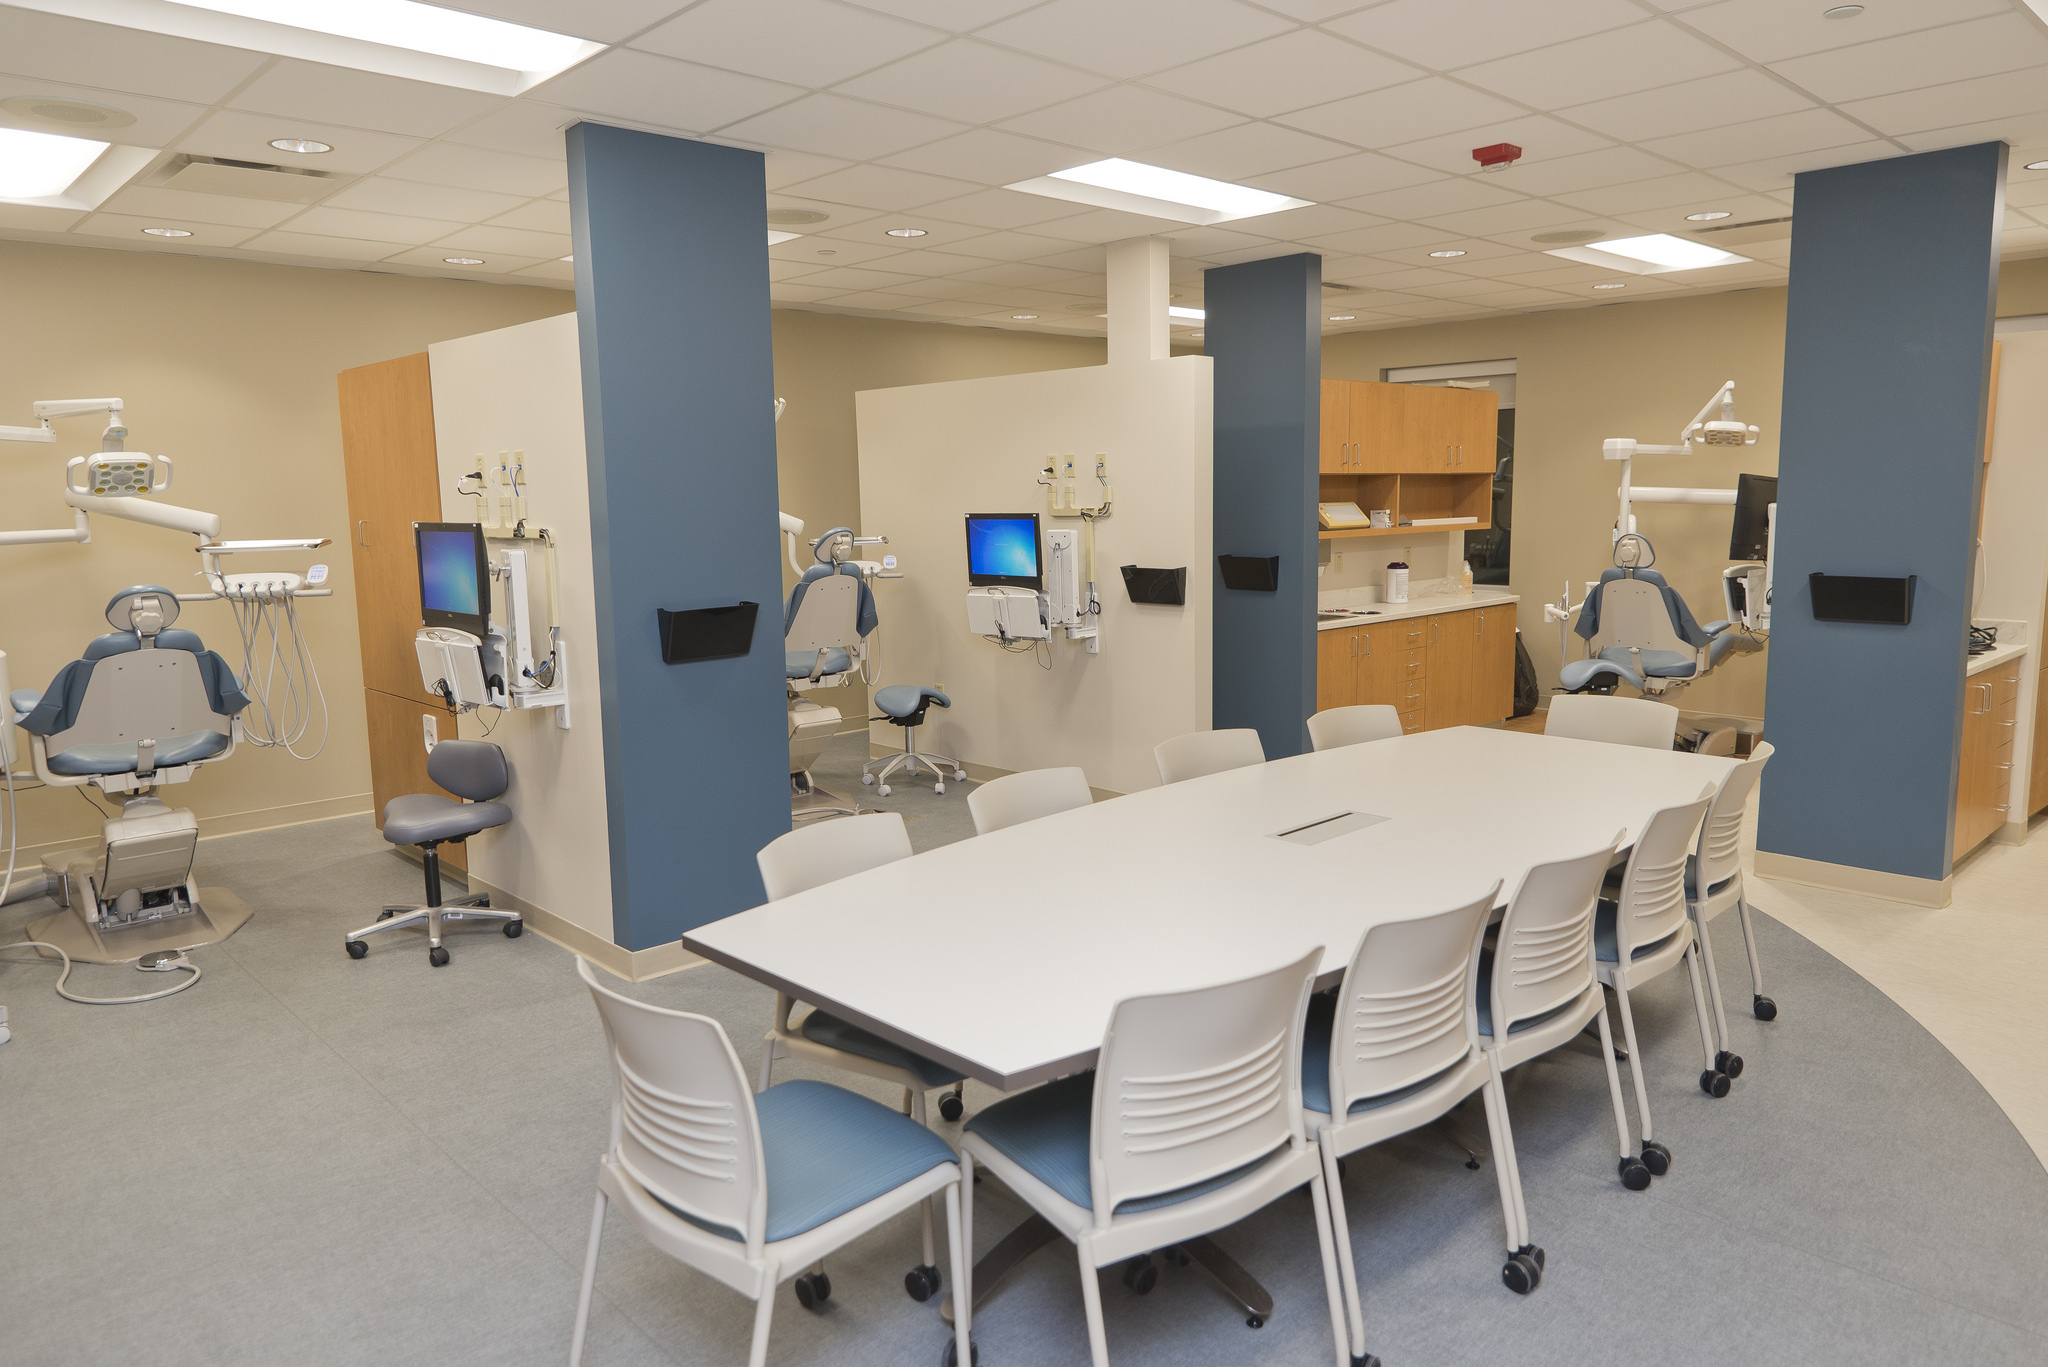 Icc dental hygiene clinic relocates to north campus opens to icc dental hygiene clinic relocates to north campus opens to patients jan 23 malvernweather Choice Image